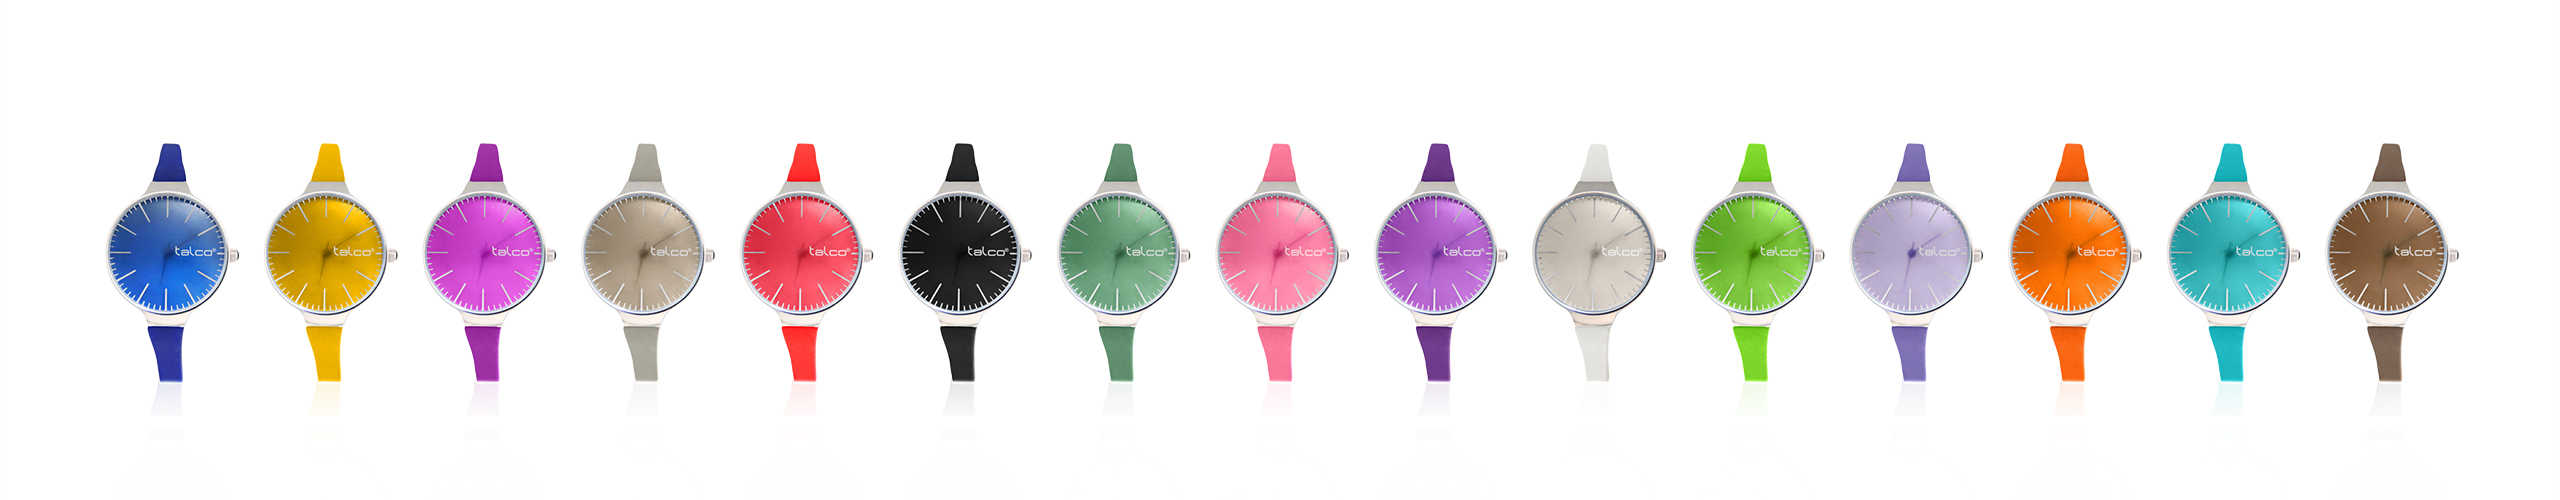 TALCO-Time_Watches